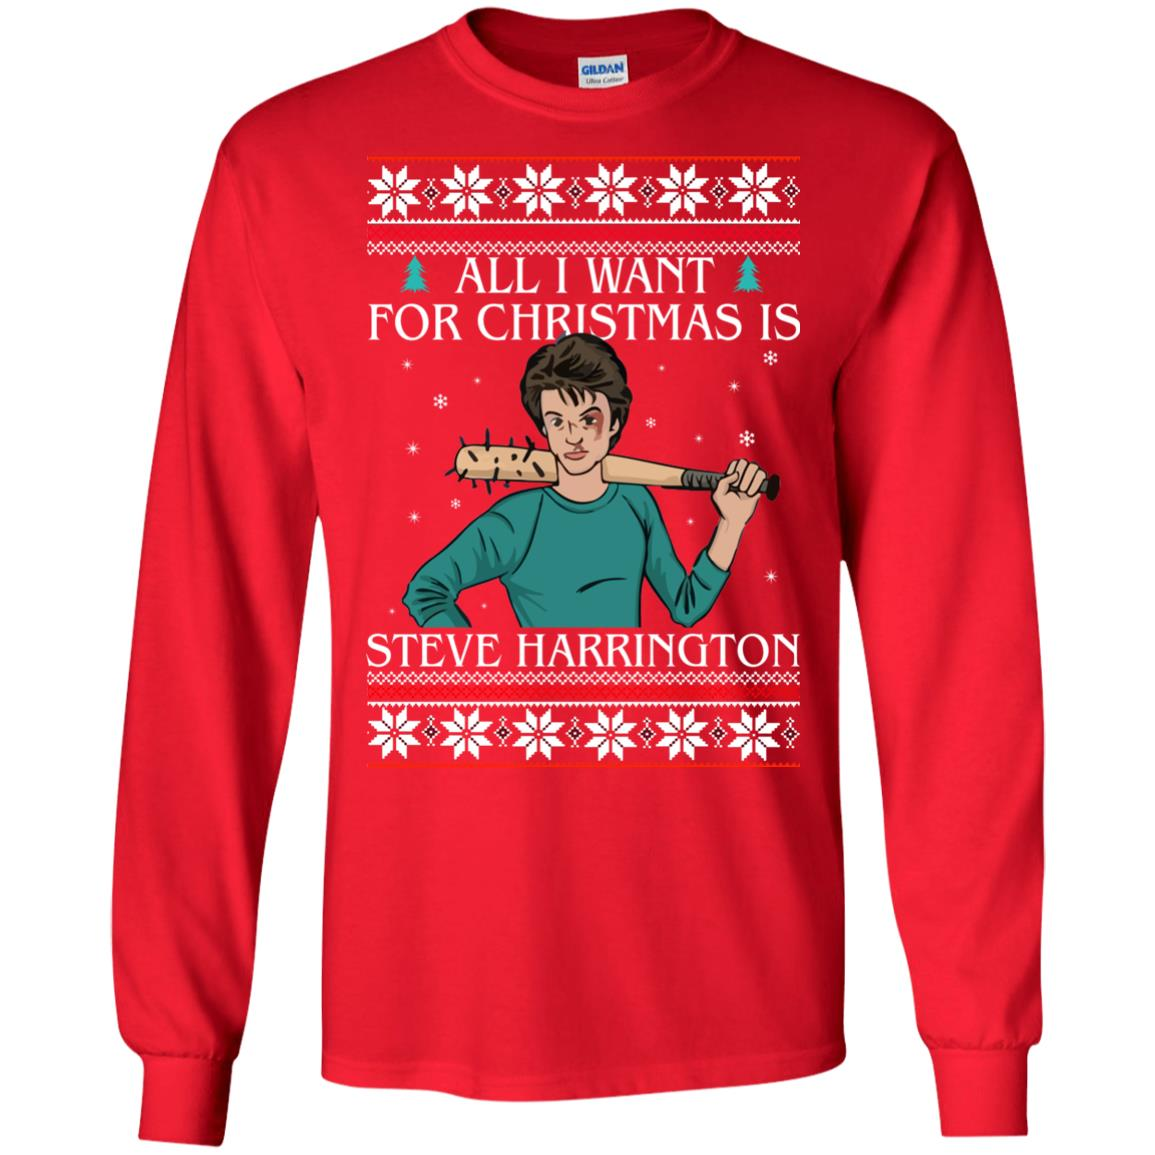 image 4029 - All I want for Christmas is Steve Harrington Ugly Sweater